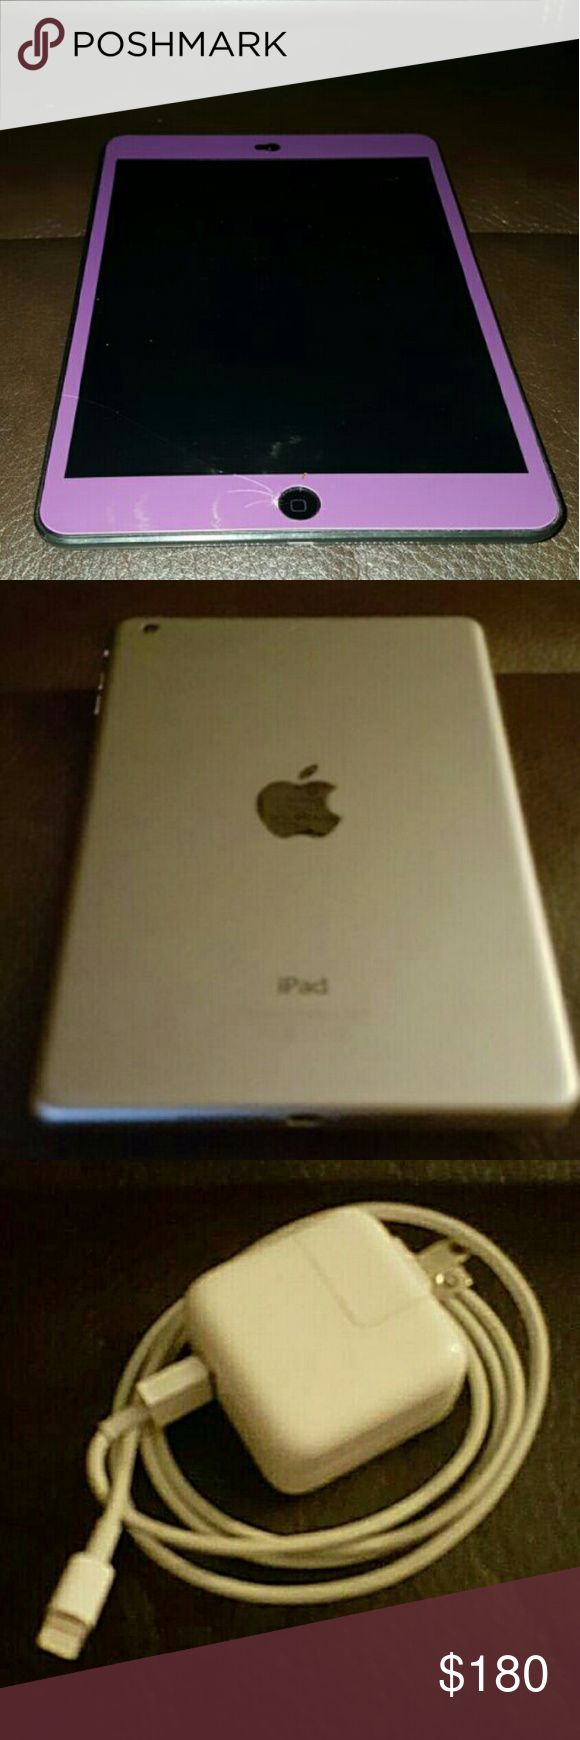 """I Pad Mini 2 32GB I Pad Mini 2 with 32GB .. Purple face with silver backing .. 7.9"""" Retina Display .. Thin & Light Design .. A7 Chip.. Ultrafast Wireless .. WiFi Connection .. USB Power Adapter.. No Cloud Account and Does Not Come with Box .. There is a hair line crack in the lower left corner, please see pictures.  This was a gift to me and I've used a handful of times. Unfortunately I am not a fan of Apple products. Soooo other than the hair line crack this I Pad Mini 2 32GB is in like new…"""